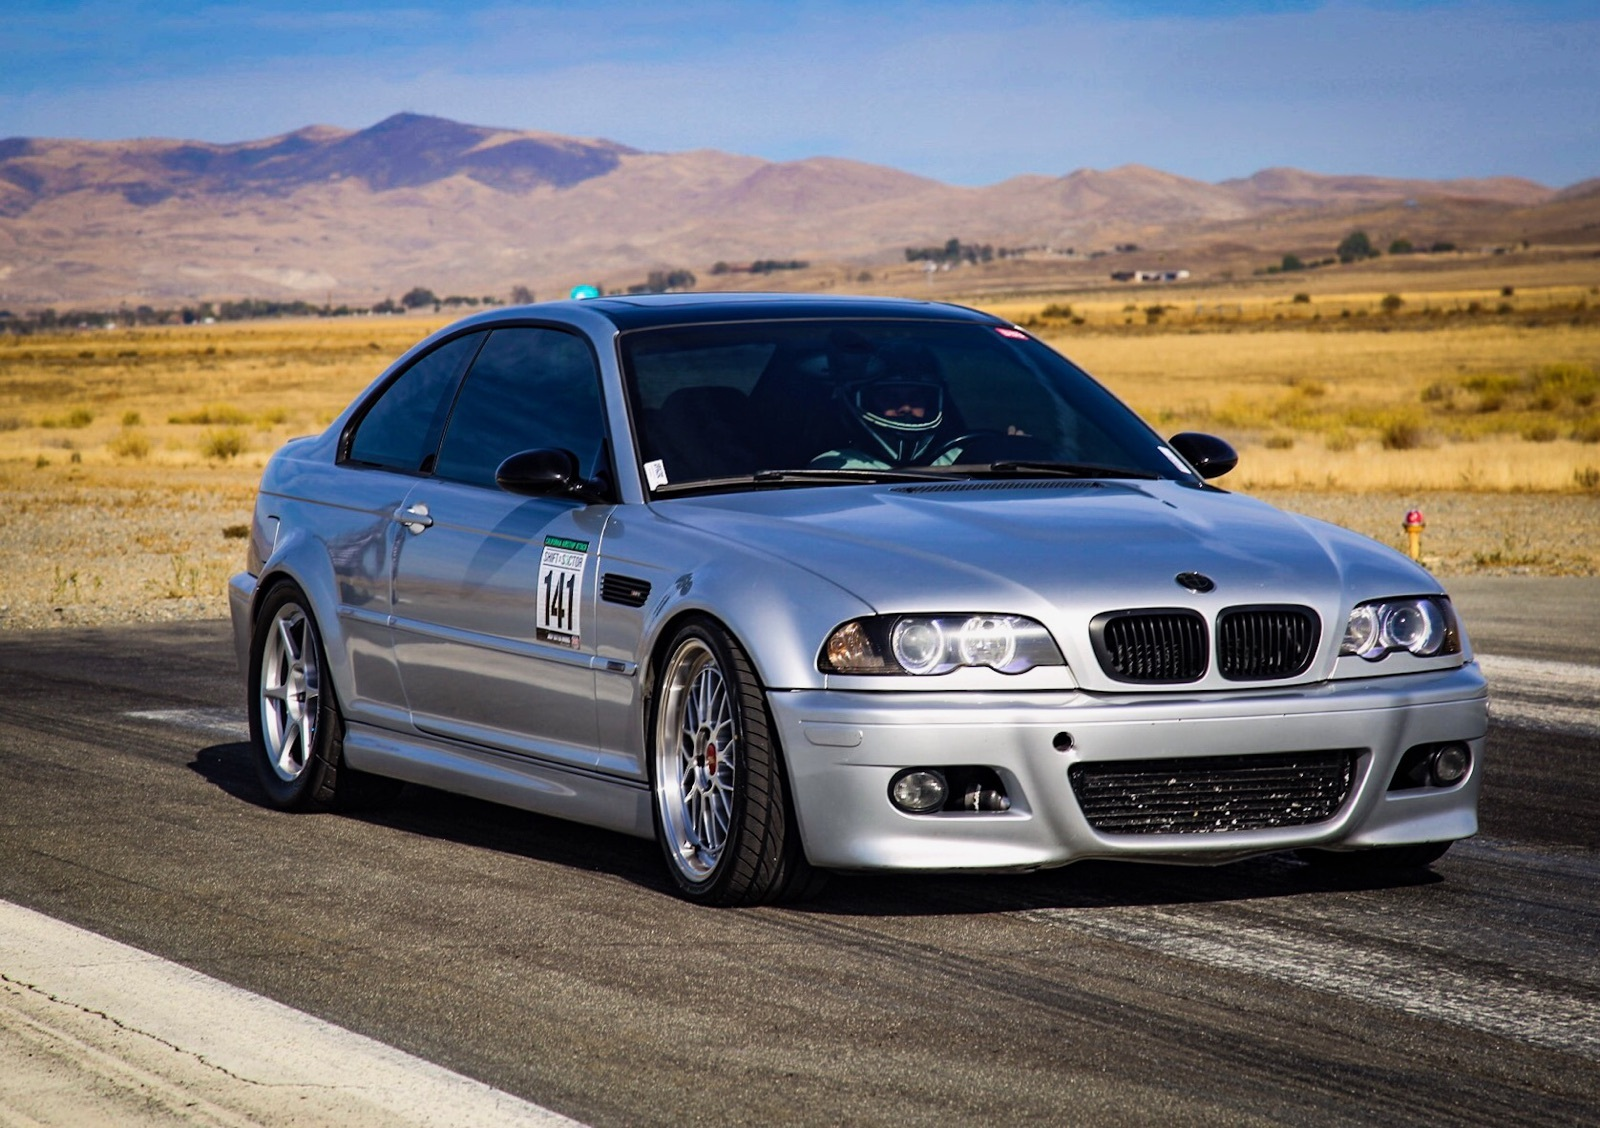 2003 bmw m3 hpf turbo kit 1 4 mile trap speeds 0 60. Black Bedroom Furniture Sets. Home Design Ideas